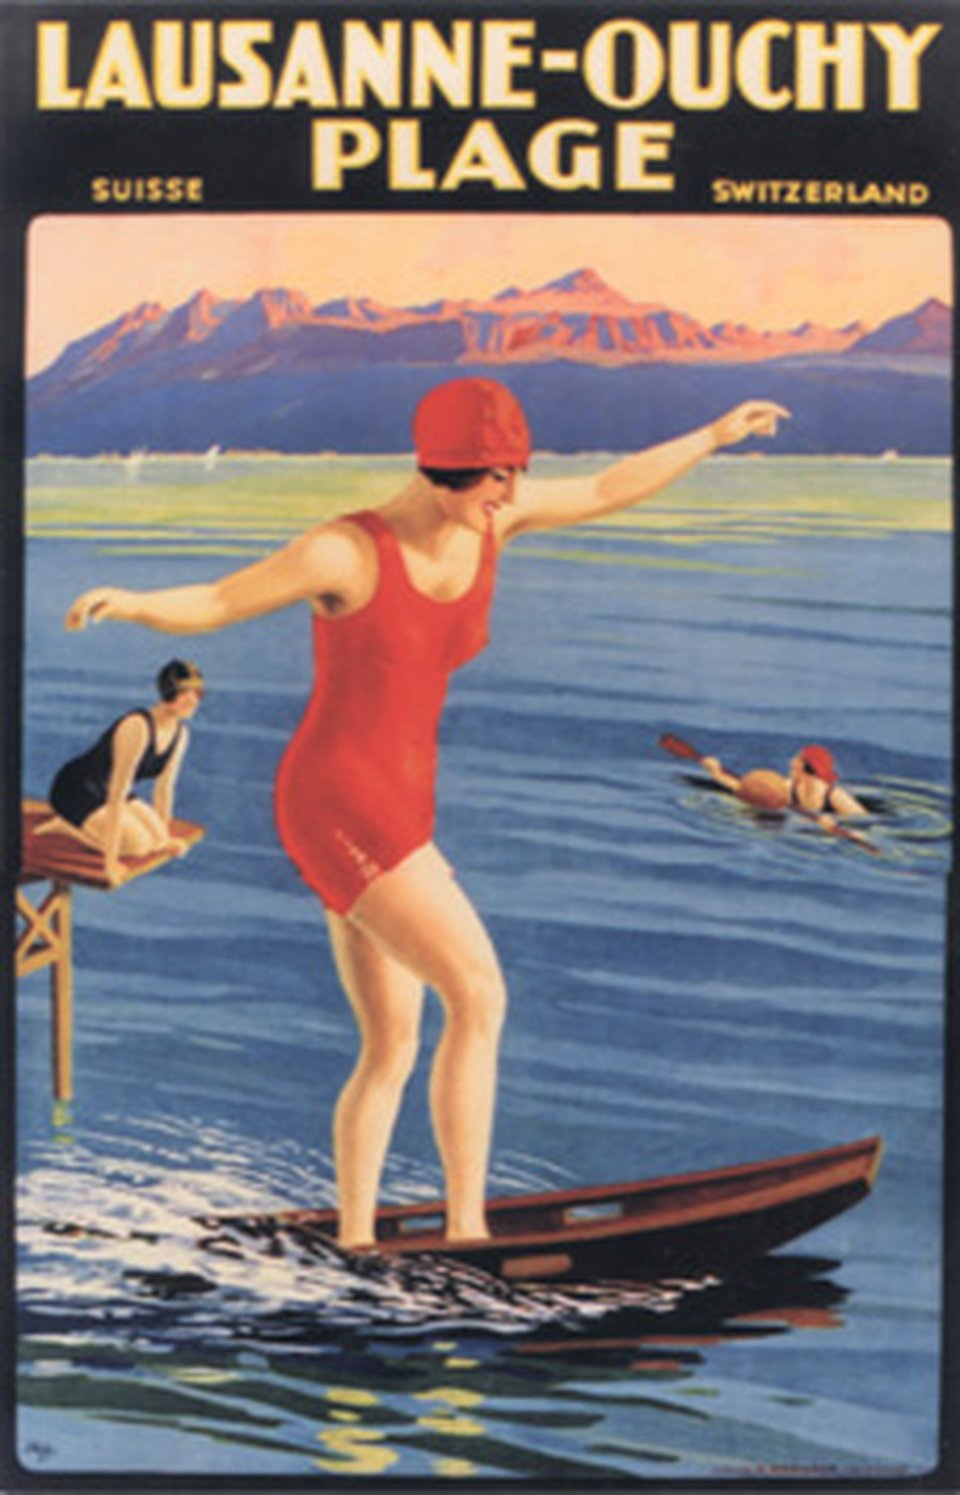 Lausanne-Ouchy, Plage – Affiche ancienne – Johannes Emil MÜLLER – 1926